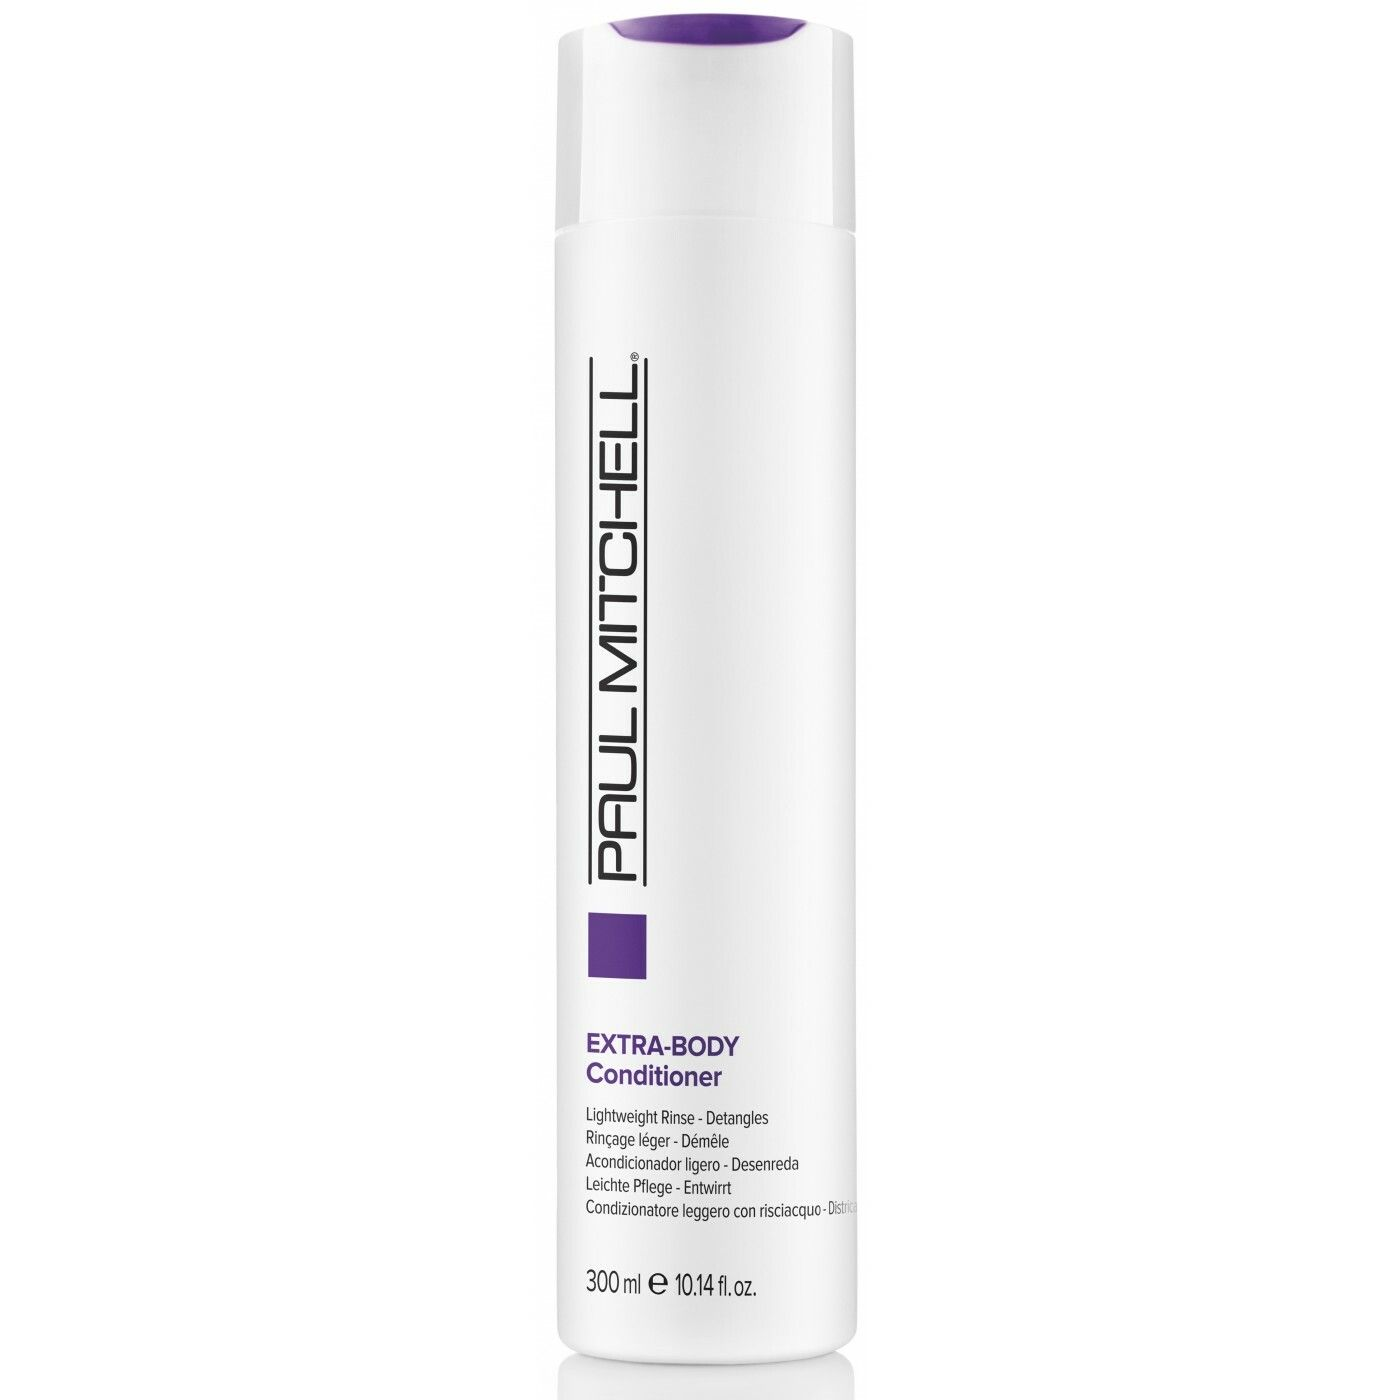 Paul Mitchell Extra-body Daily Conditioner - 300ml